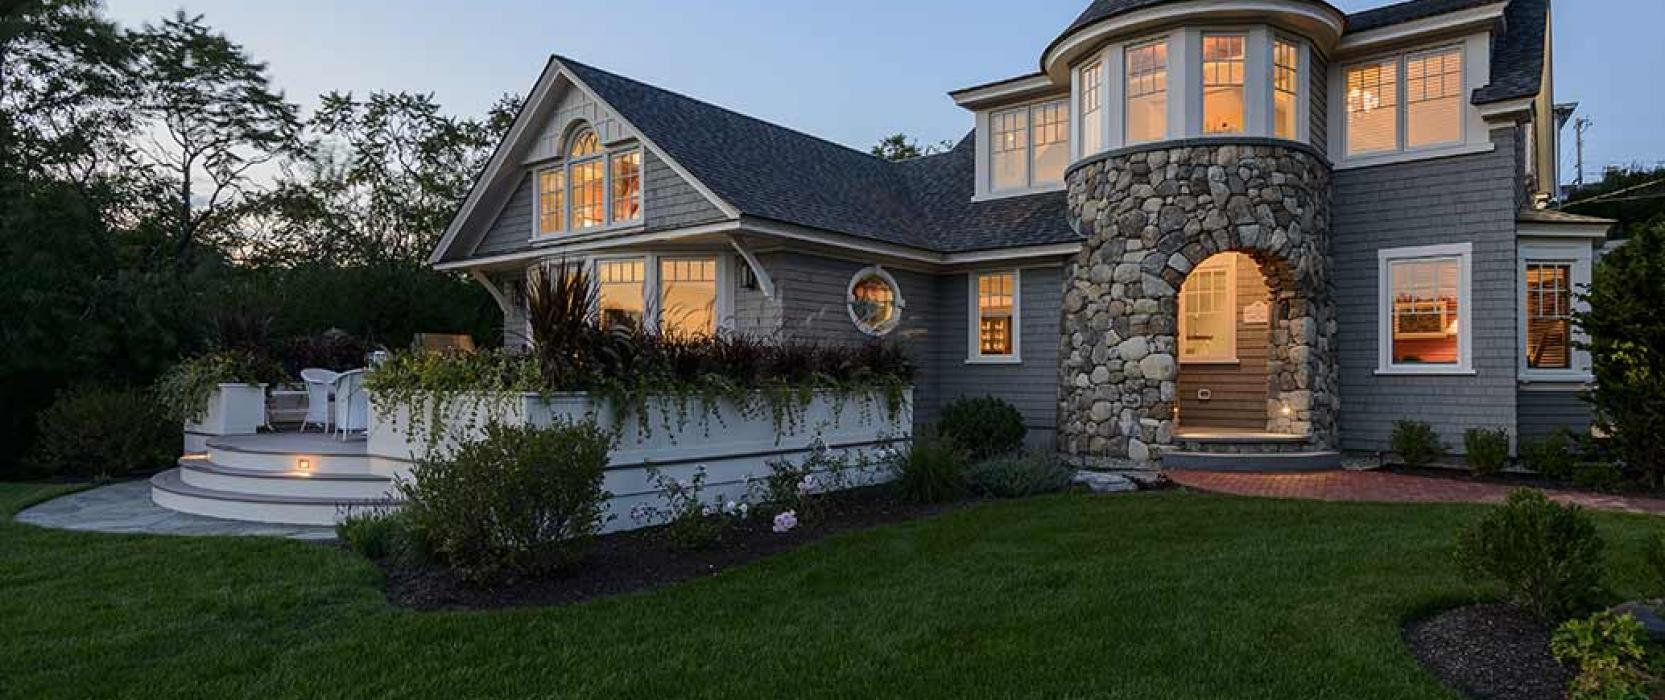 luxury homes in New Hampshire